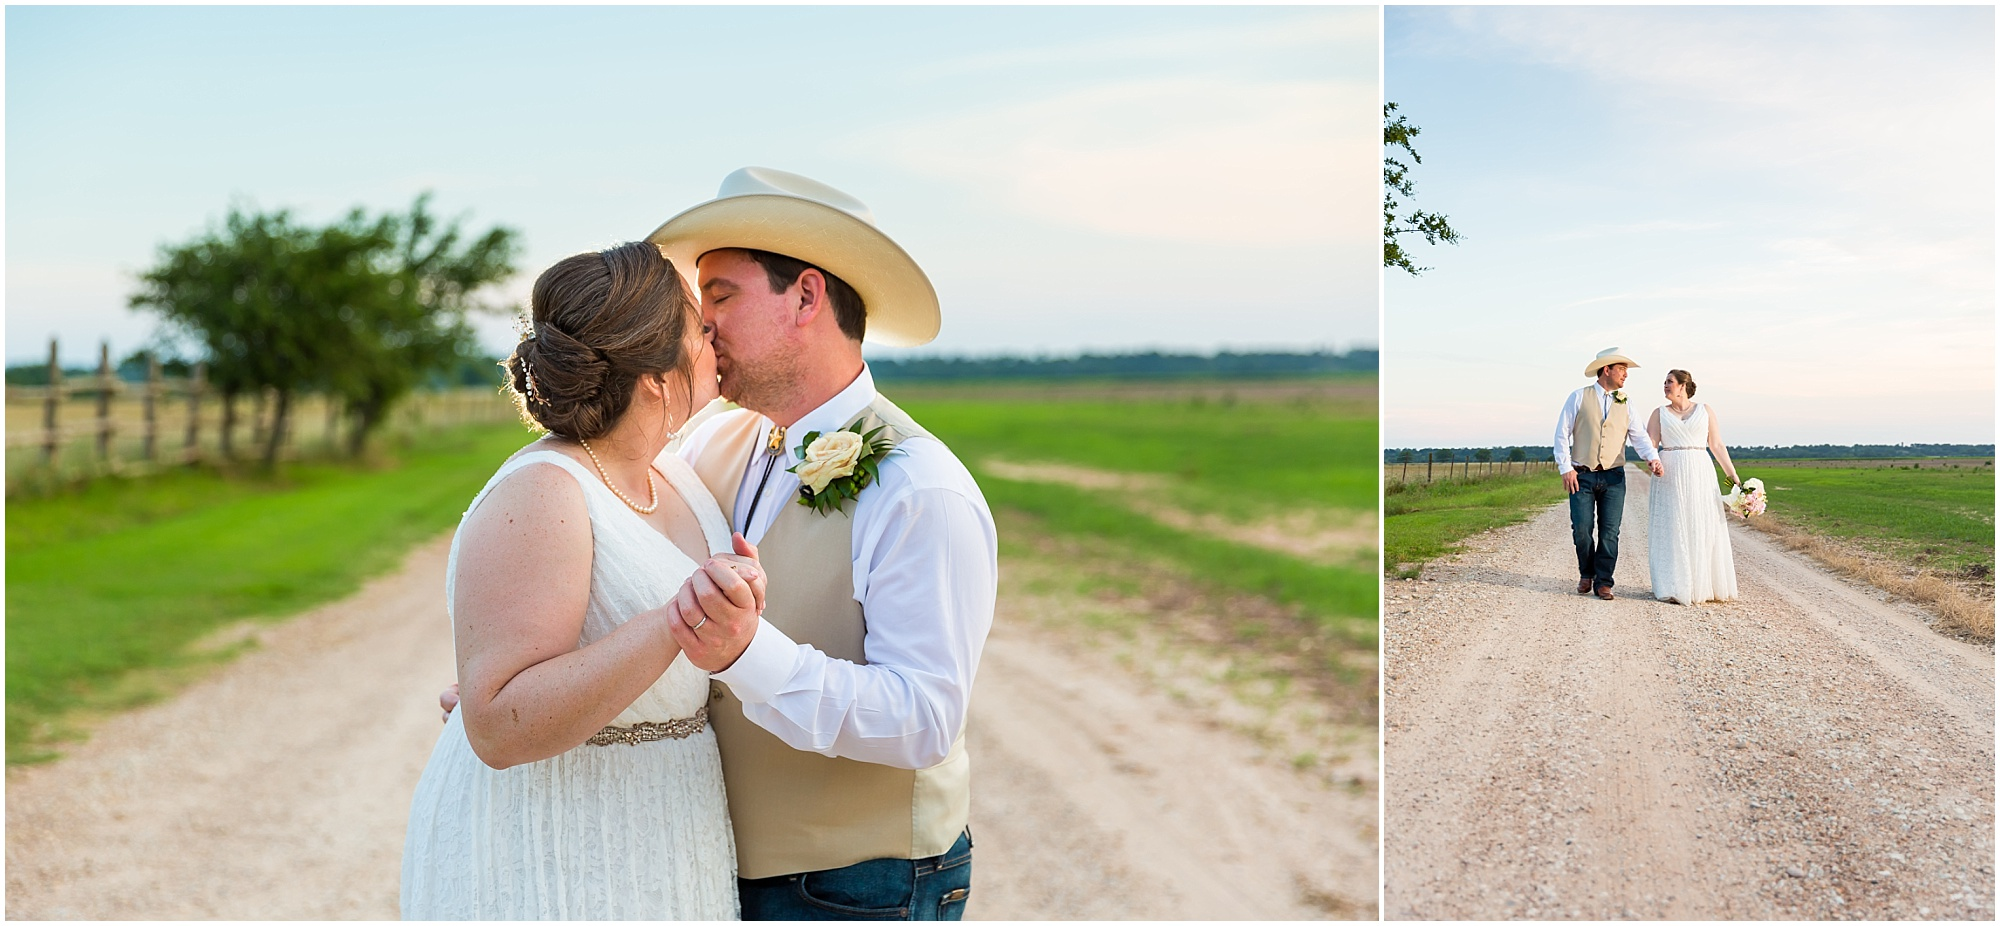 A groom kisses his bride outside their wedding reception at Moon River Ranch | Jason & Melaina Photography | www.jasonandmelaina.com